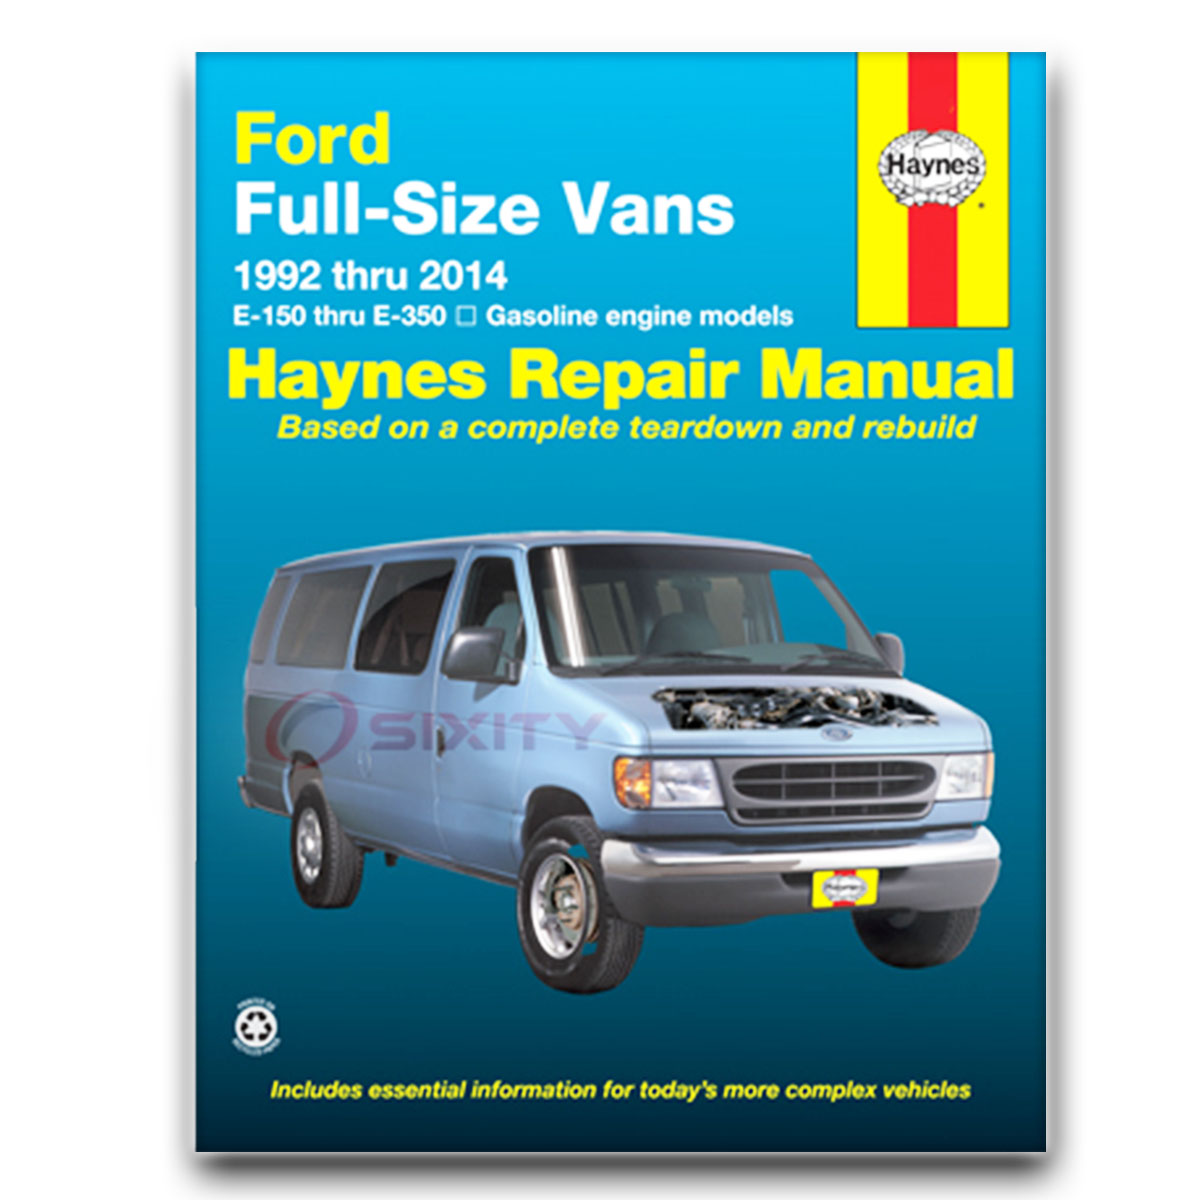 Chiltons total car care repair manuals pdf